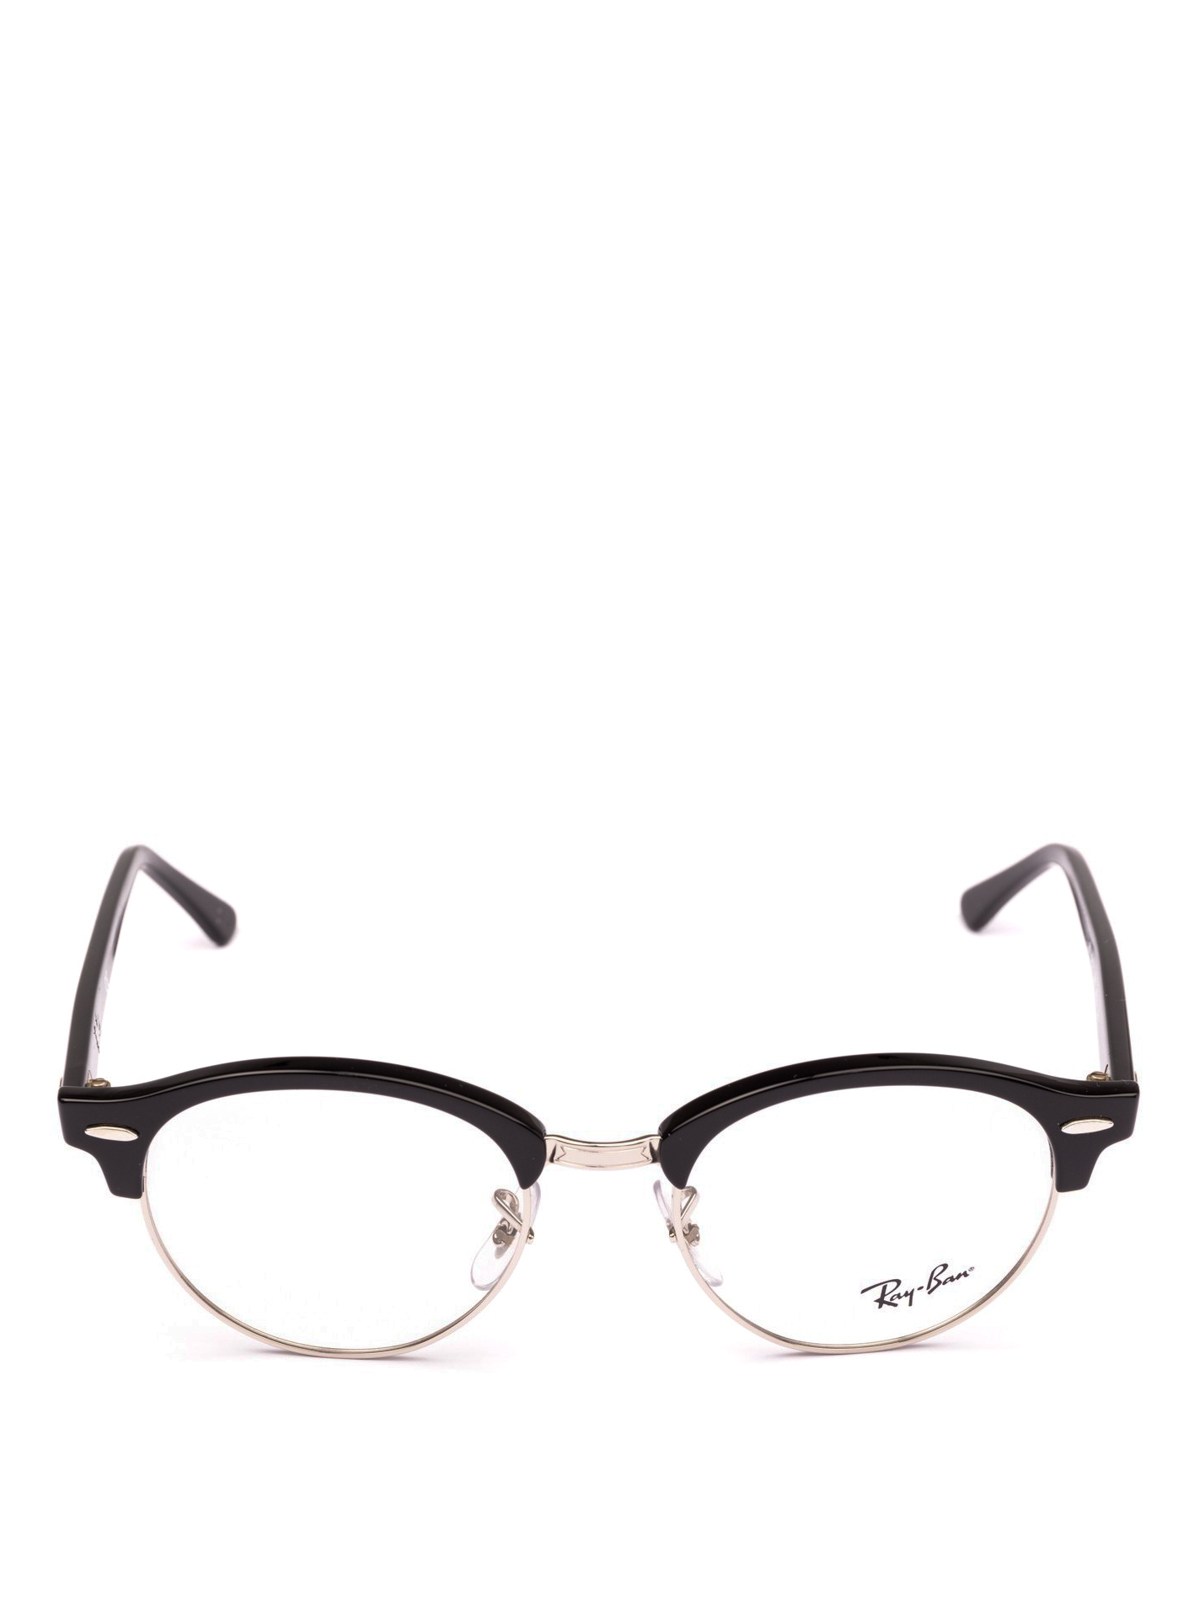 Ray Ban - Black acetate and metal half frame glasses - glasses ...